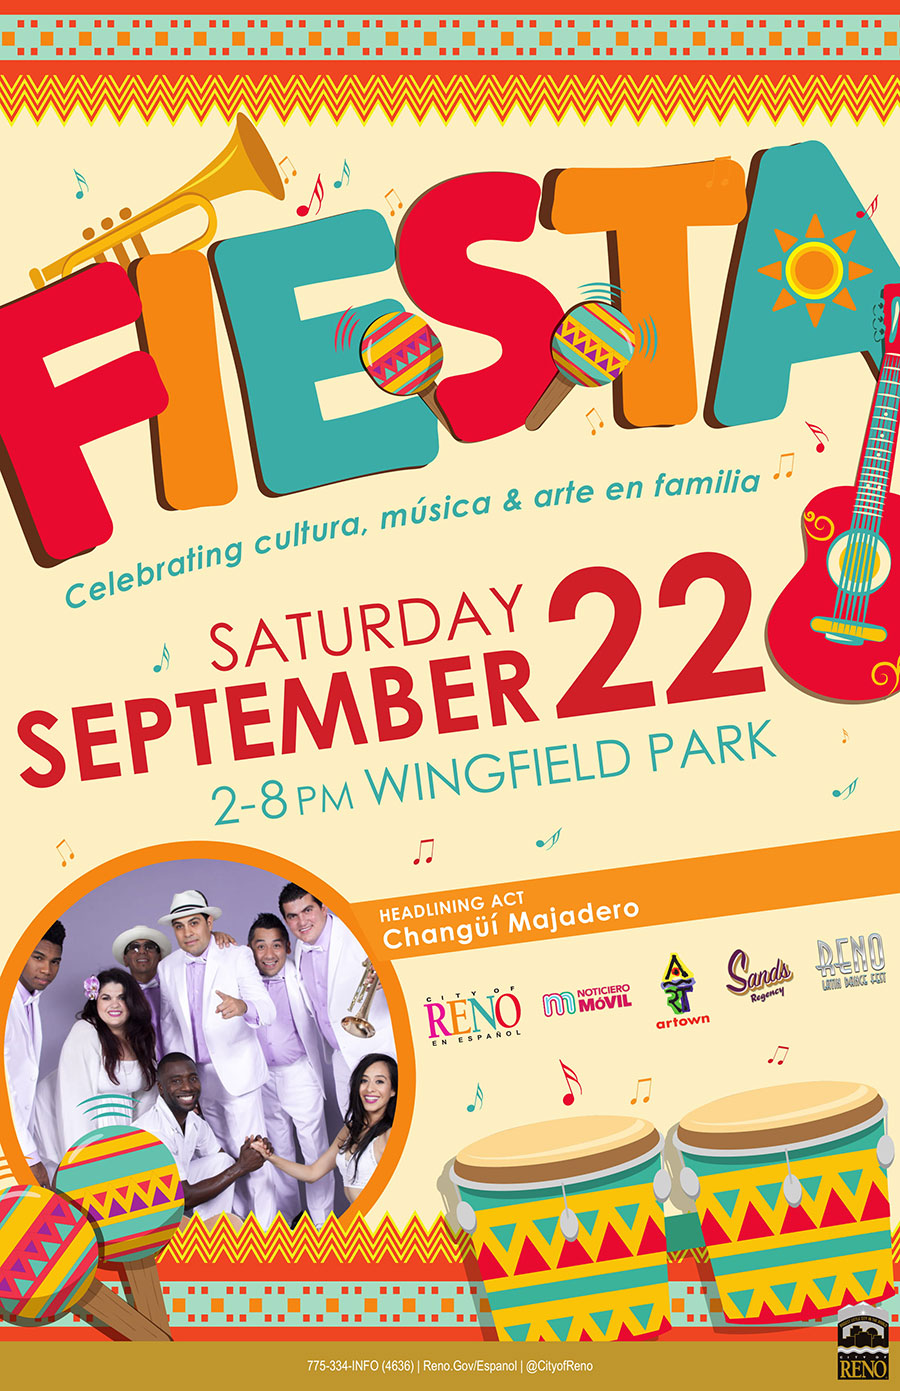 Flyer for Fiesta 2018 Saturday September 22 2-8pm at Wingfield Park